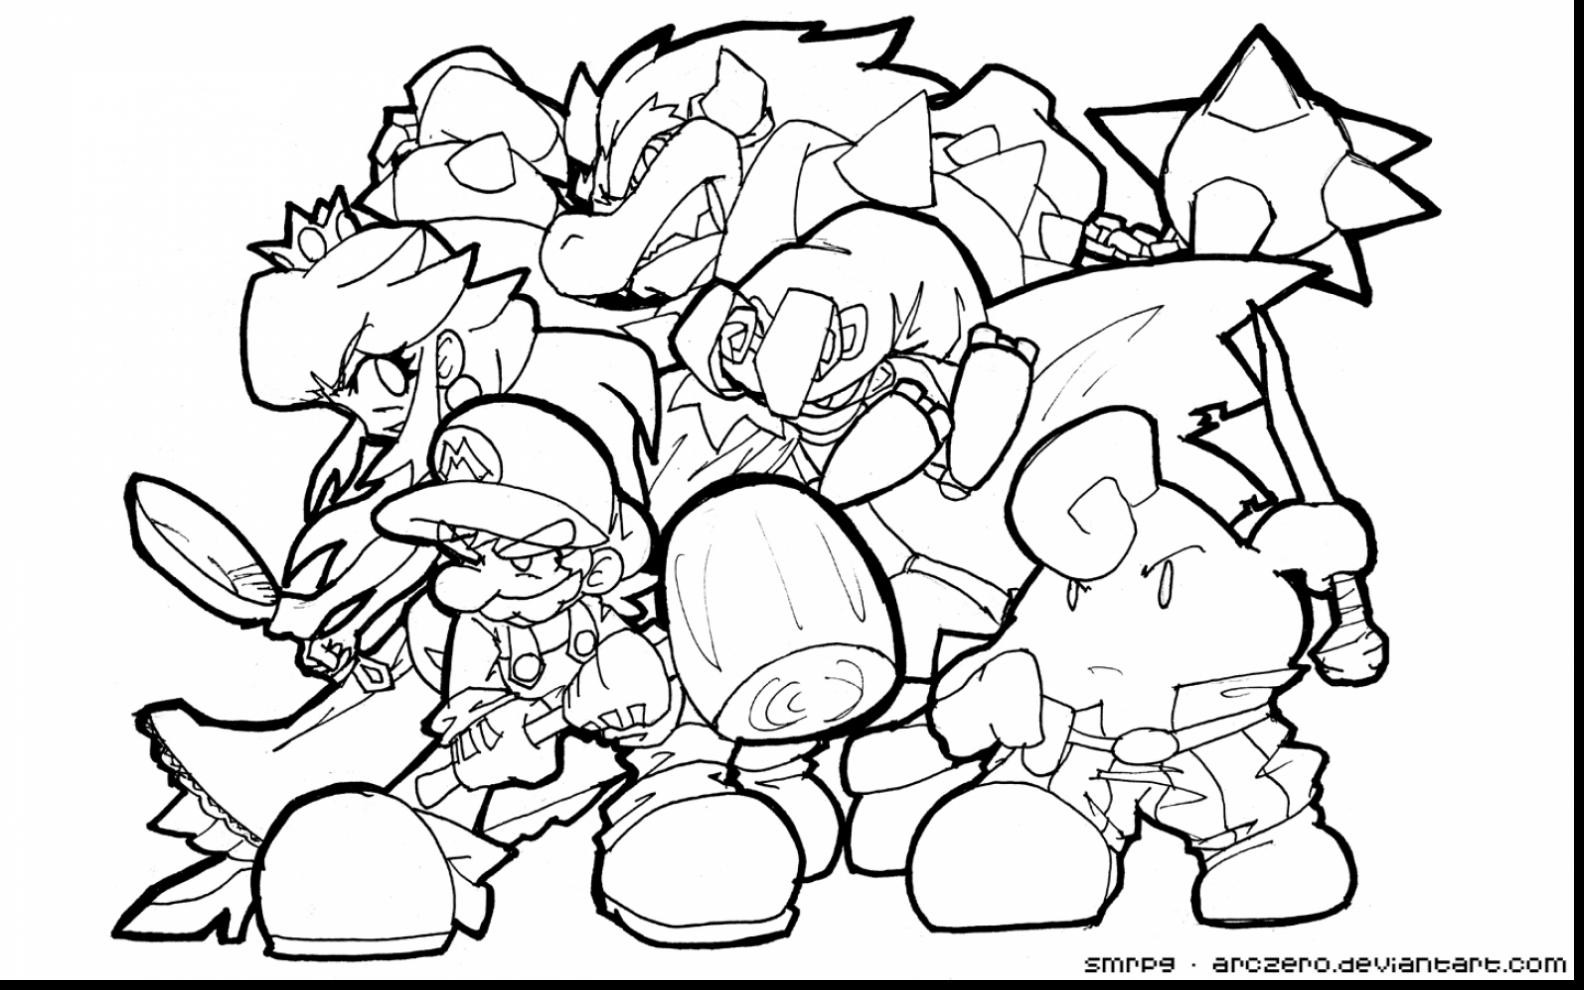 1584x990 Bowser Coloring Pages Printable Image Throughout Page